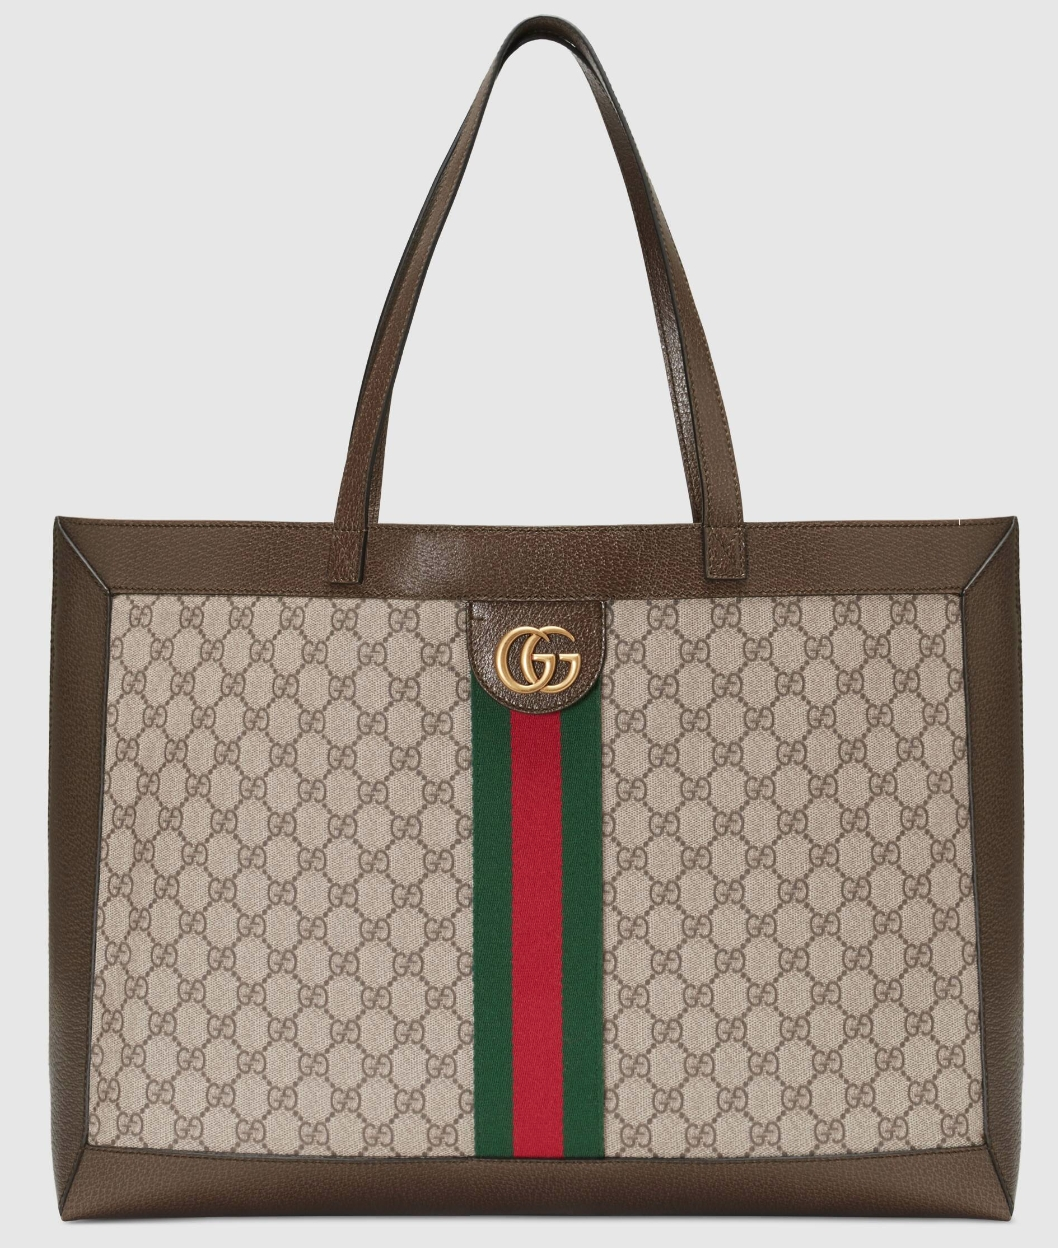 2020名牌春夏Tote Bag,CHANEL,GUCCI,LOUIS VUITTON,優雅,知性,輕熟女,FENDI